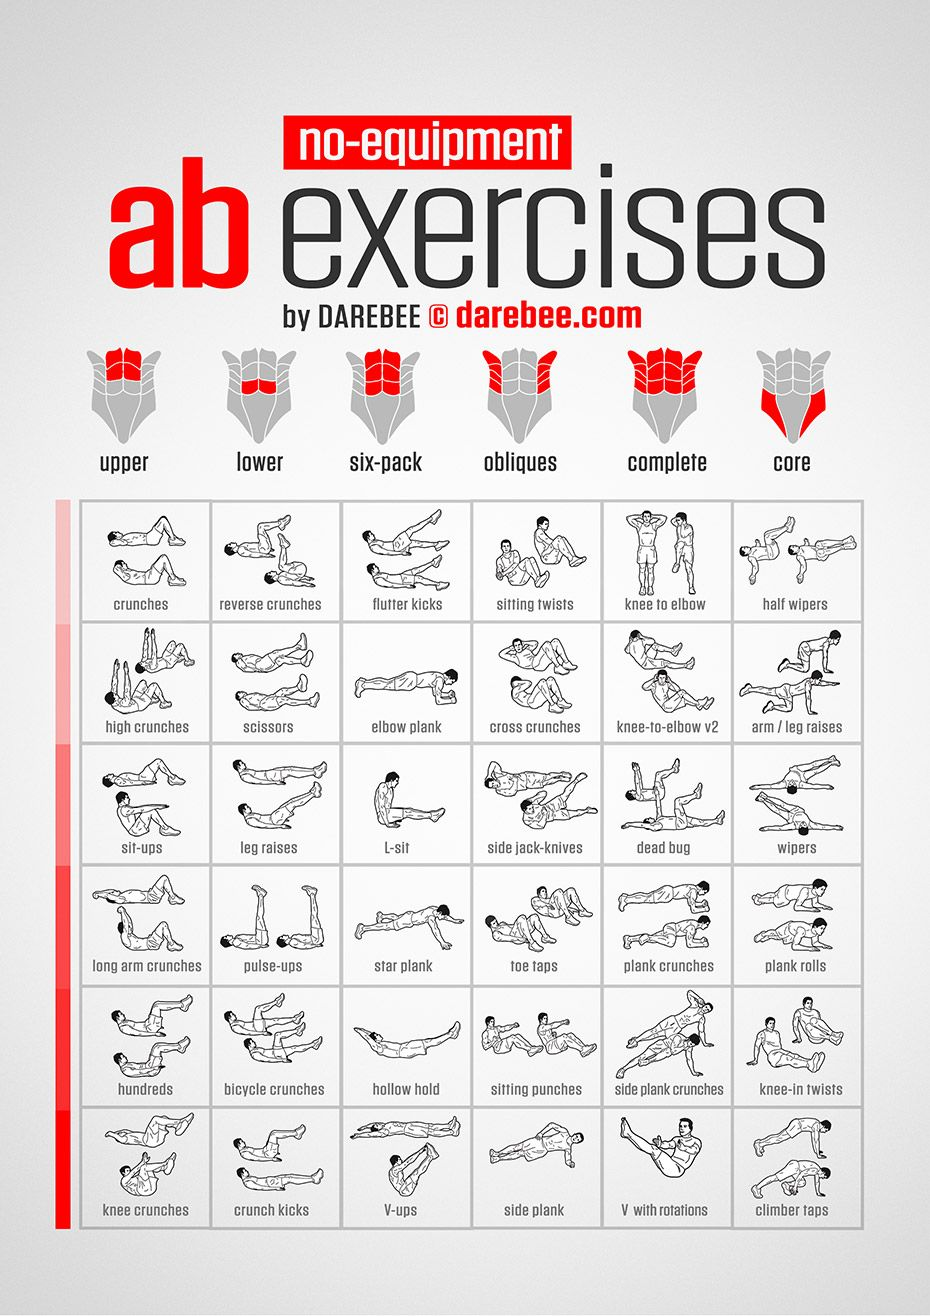 no equipment ab exercises chart exercise fitne. Black Bedroom Furniture Sets. Home Design Ideas